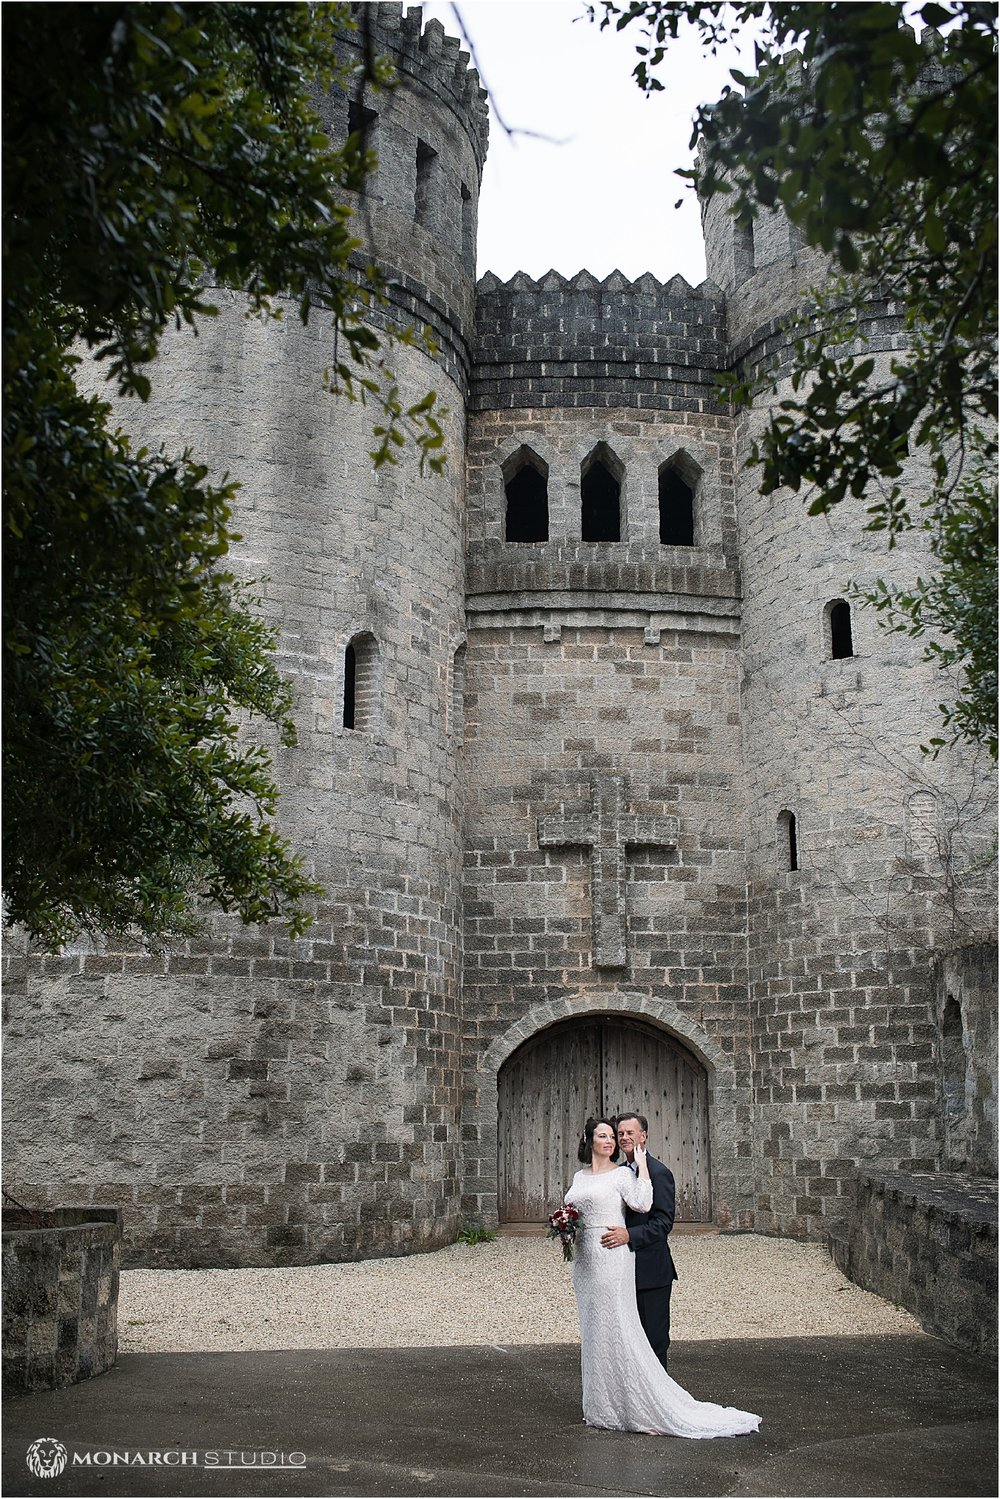 Our Bride and Groom, infront of one of Saint Augustine's most iconic landmarks, the Castle Otttis